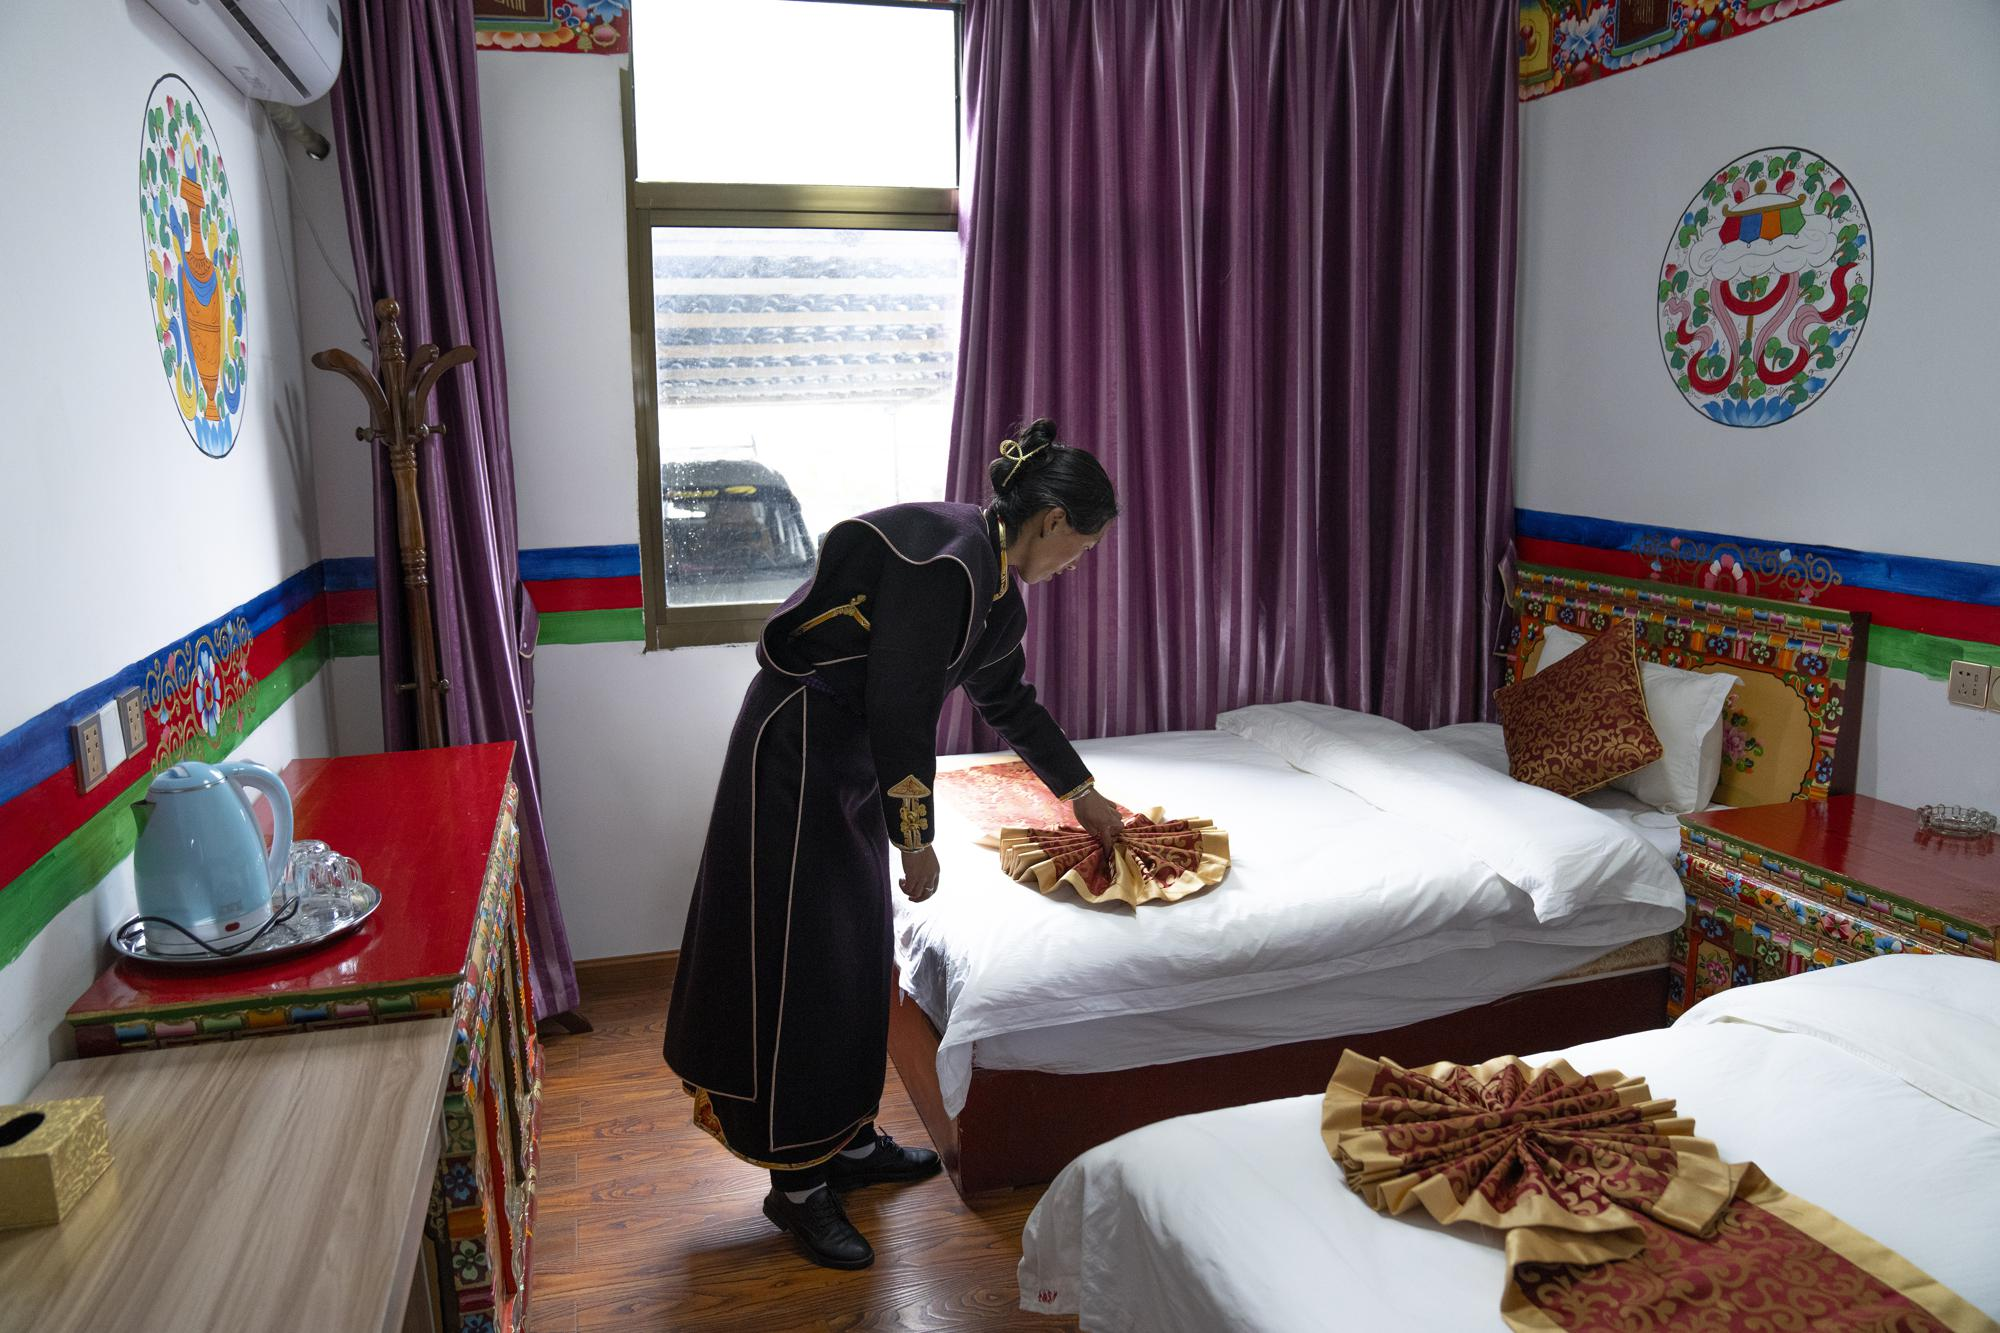 A woman in ethnic dress adjusts a bedspread at her tourist homestay in Zhaxigang village near Nyingchi in western China's Tibet Autonomous Region, Friday, June 4, 2021. Tourism is booming in Tibet as more Chinese travel in-country because of the coronavirus pandemic, posing risks to the region's fragile environment and historic sites. (AP Photo/Mark Schiefelbein)